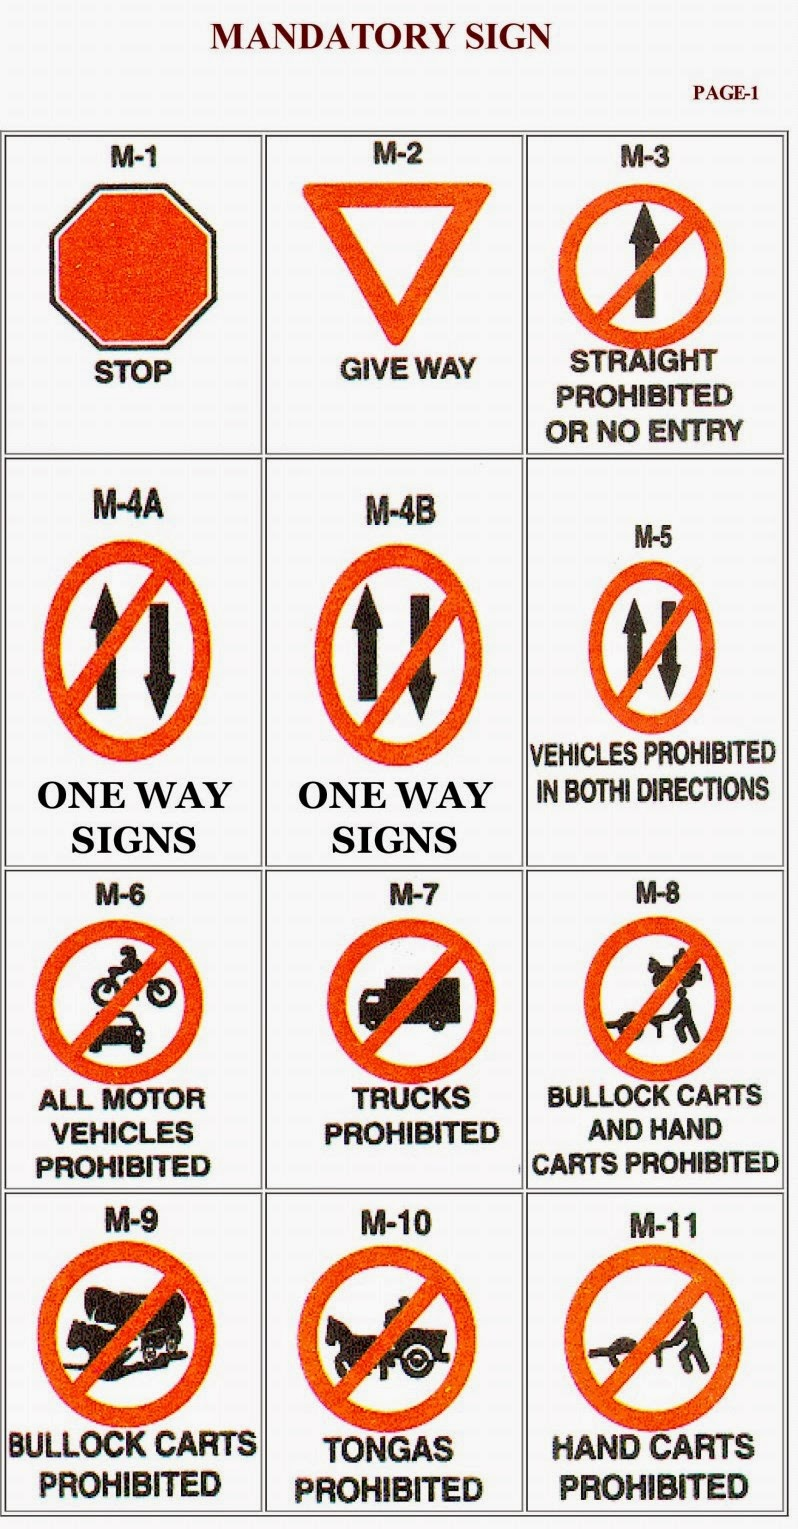 RTO - Learners' Licence - Traffic Signs - What, When, Why, How?